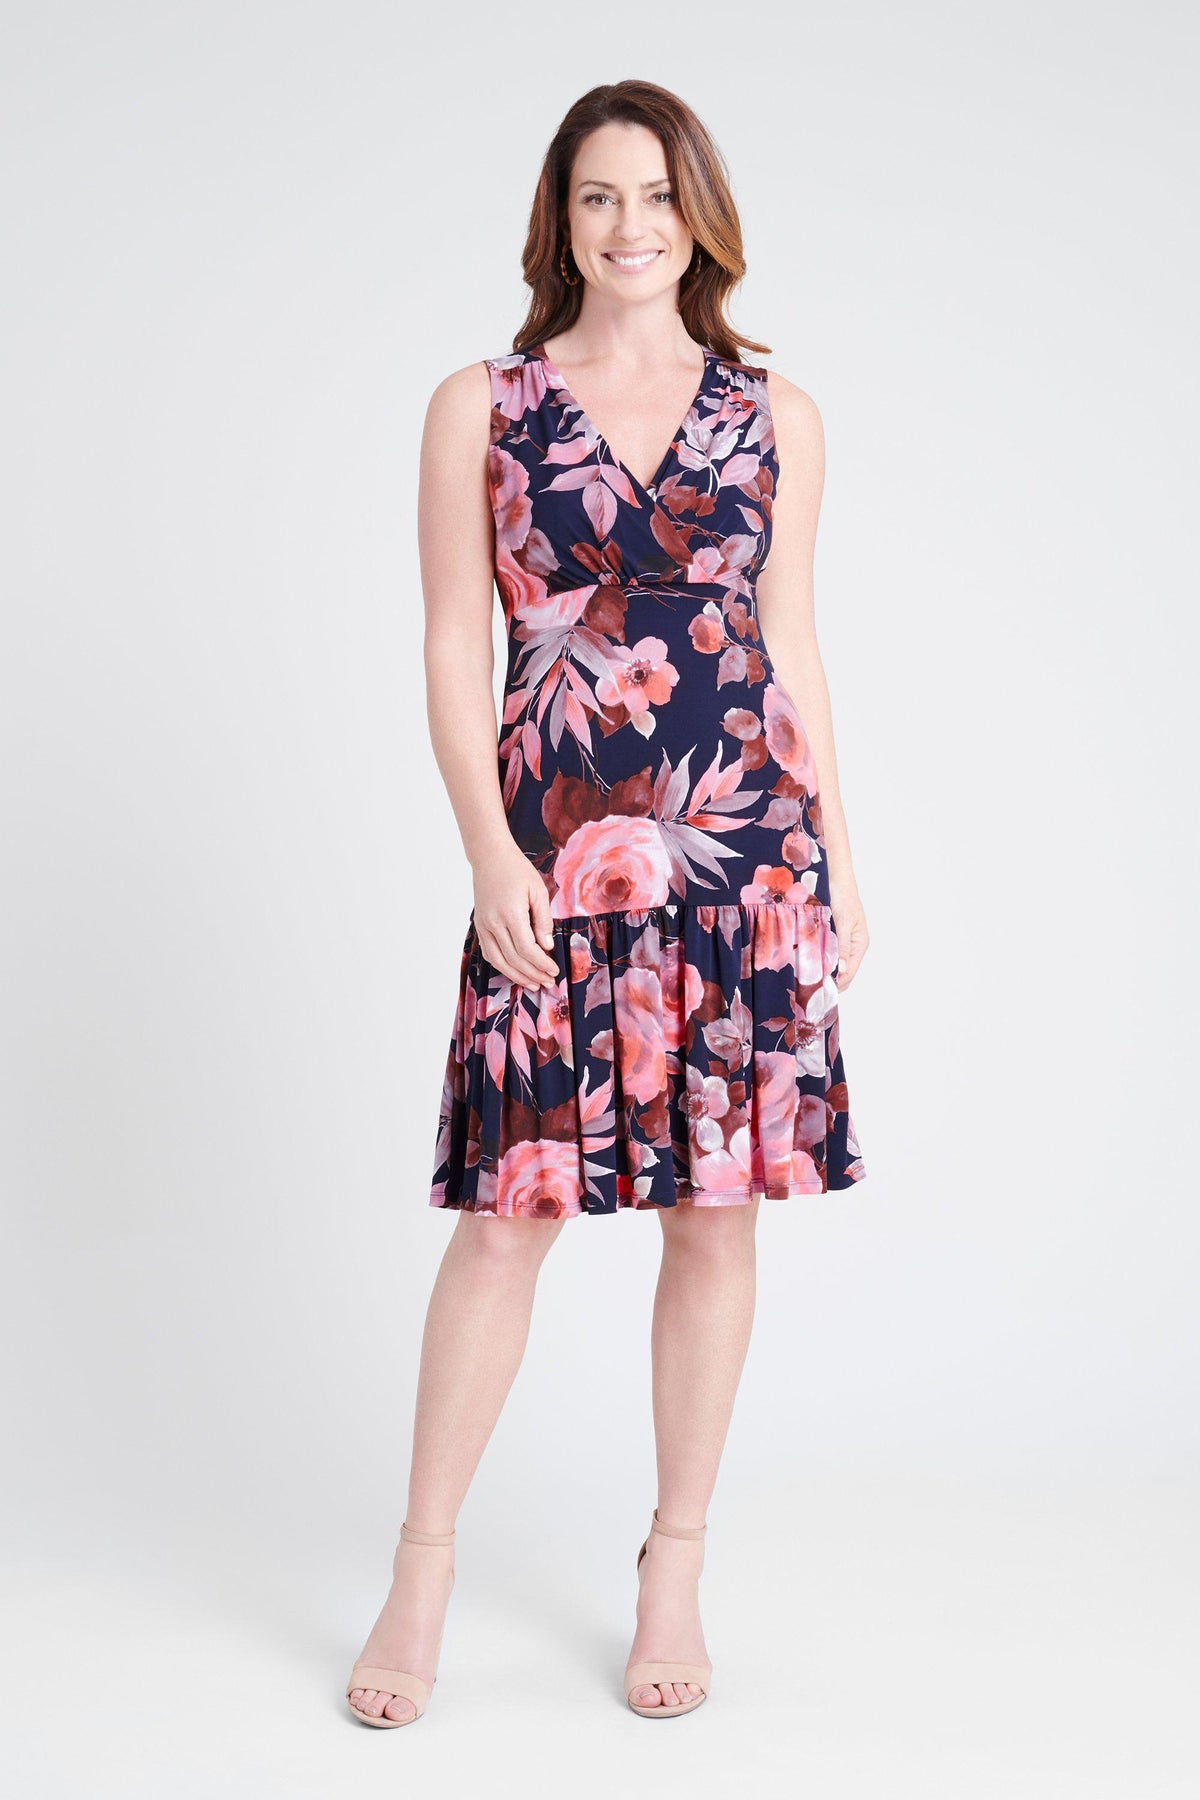 woman-wearing-connected-apparel-Layla Floral Print Dress [PRE-ORDER]-posing-on-plain-background